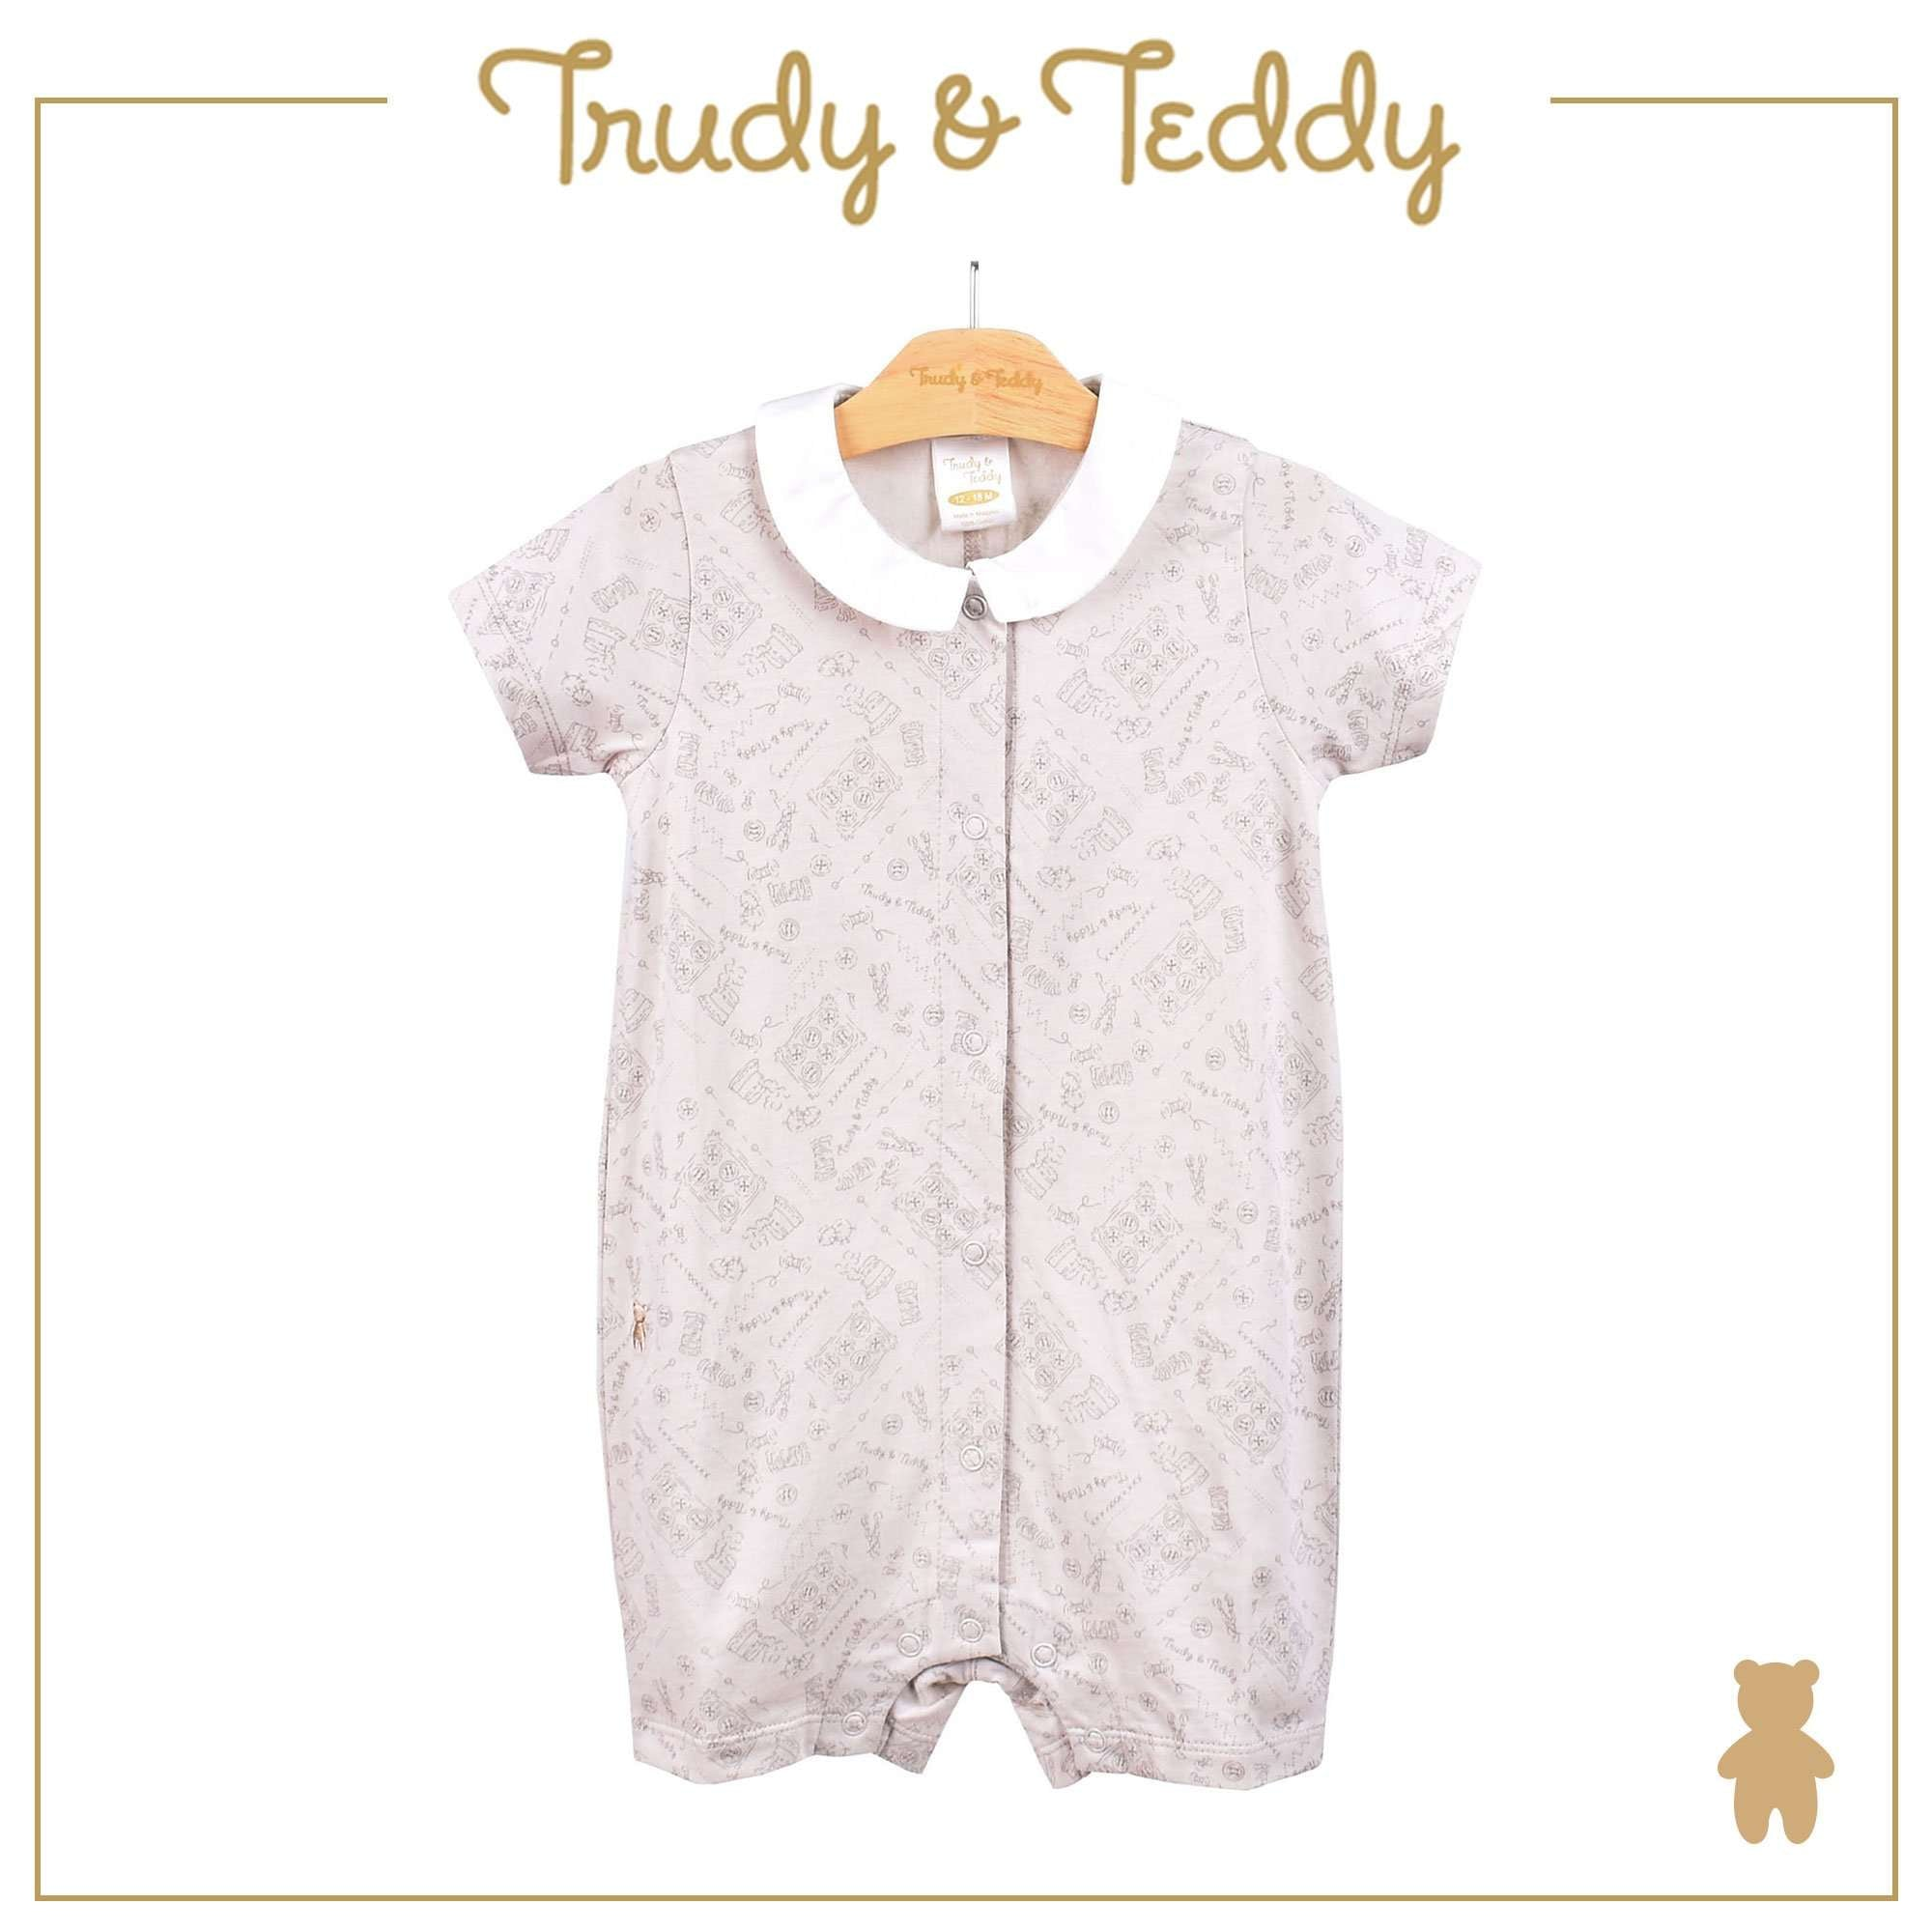 Trudy & Teddy Baby Boy Short Sleeve Short Romper 810022-361 : Buy Trudy & Teddy online at CMG.MY